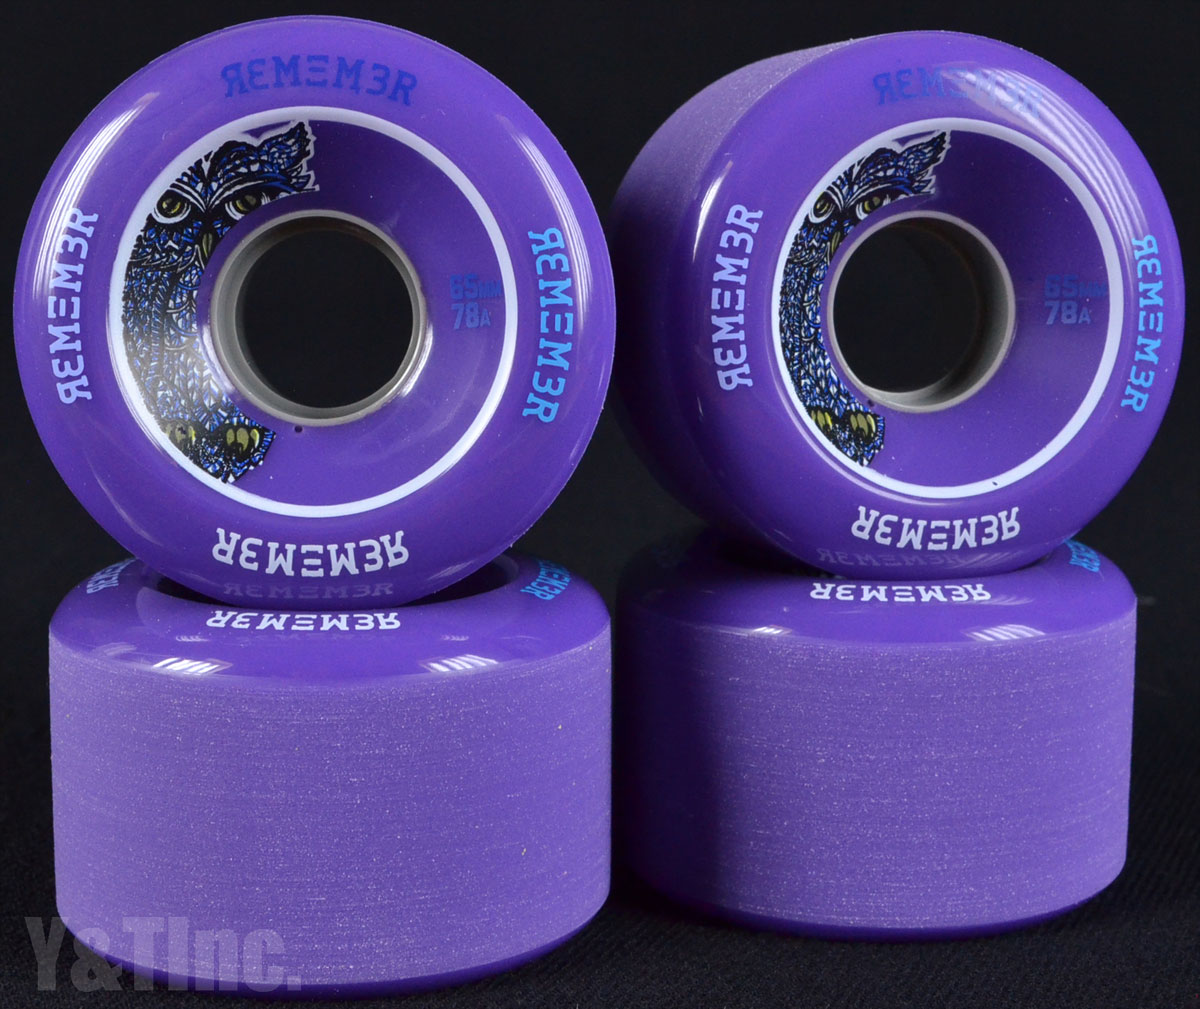 REMEMBER LiL Hoot 65mm 78a Purple 1